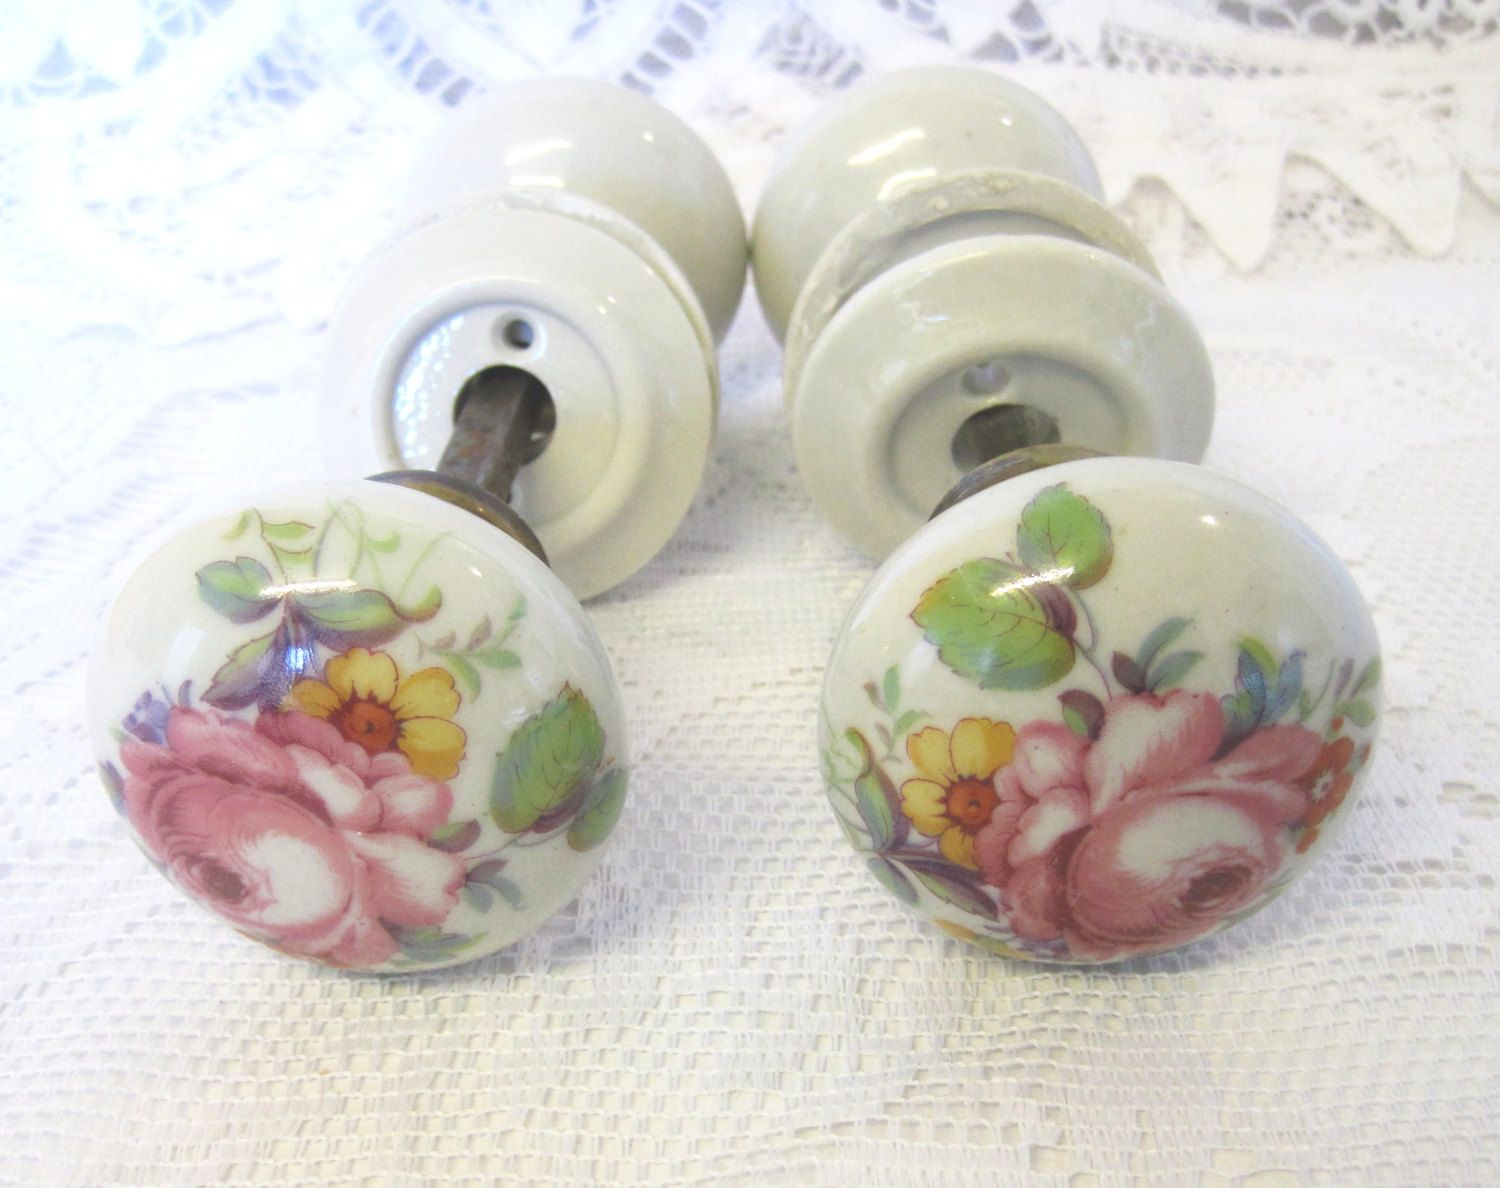 2 Pairs Floral Porcelain Door Knobs With Fittings, Shabby Chic Door Handles,  SOLD